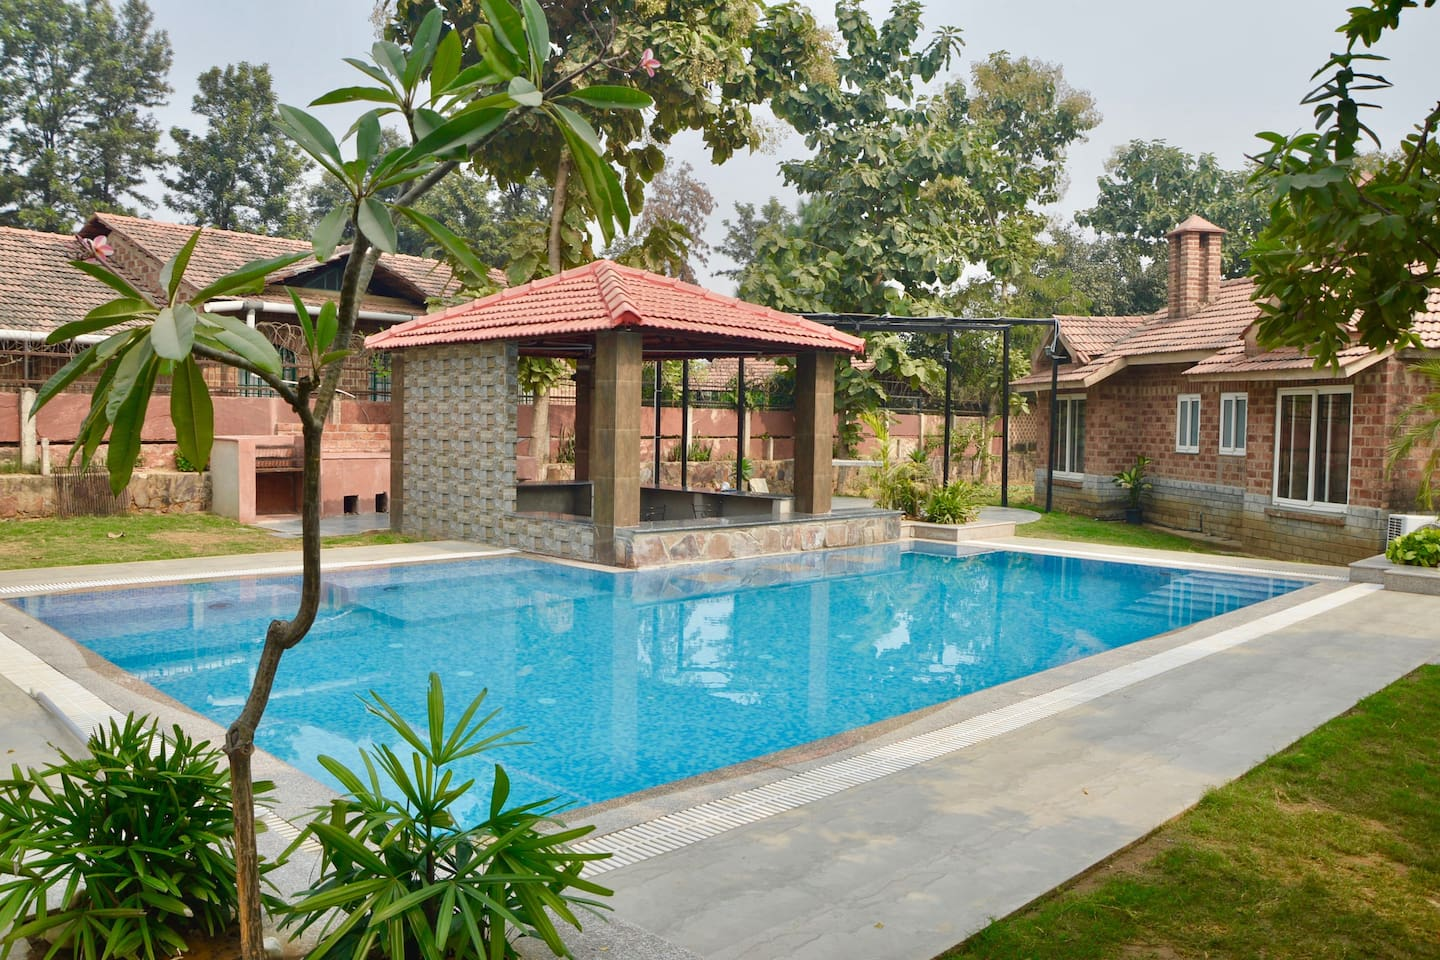 Newly constructed swimming pool with attached deck, gazebo and BBQ pitts